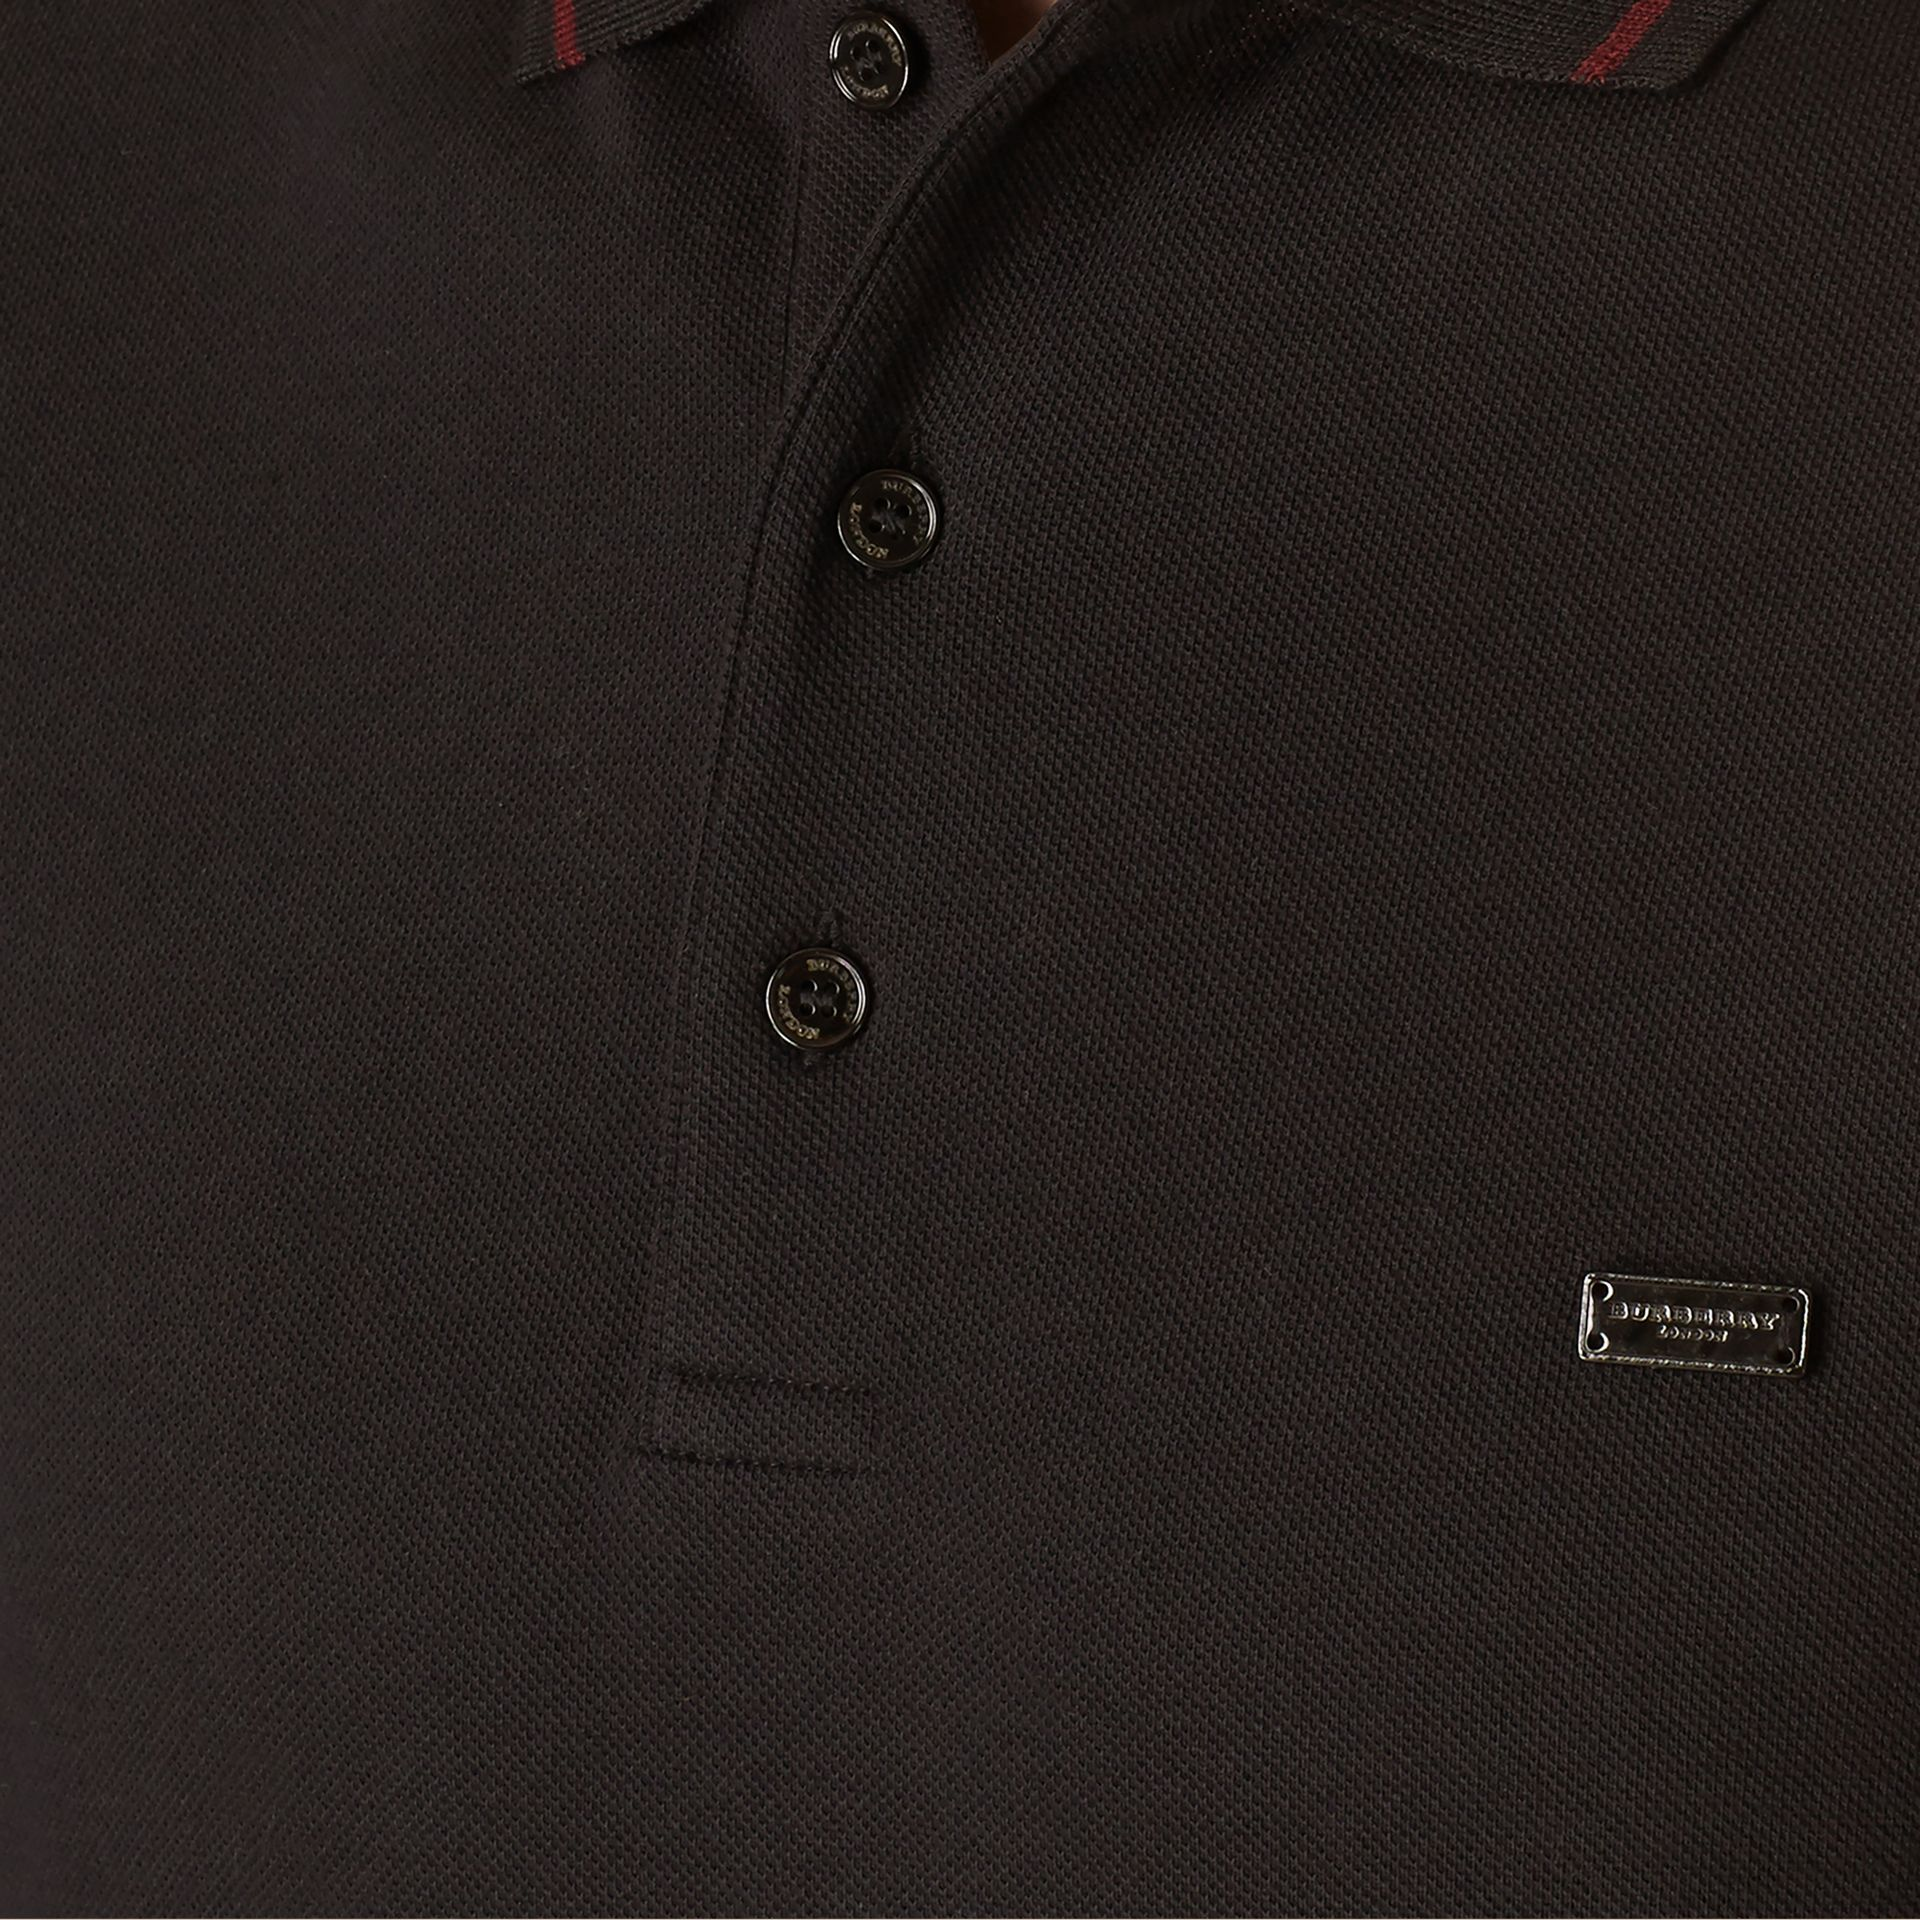 Black/mahogany red Contrast Tipping Cotton Piqué Polo Shirt - gallery image 2